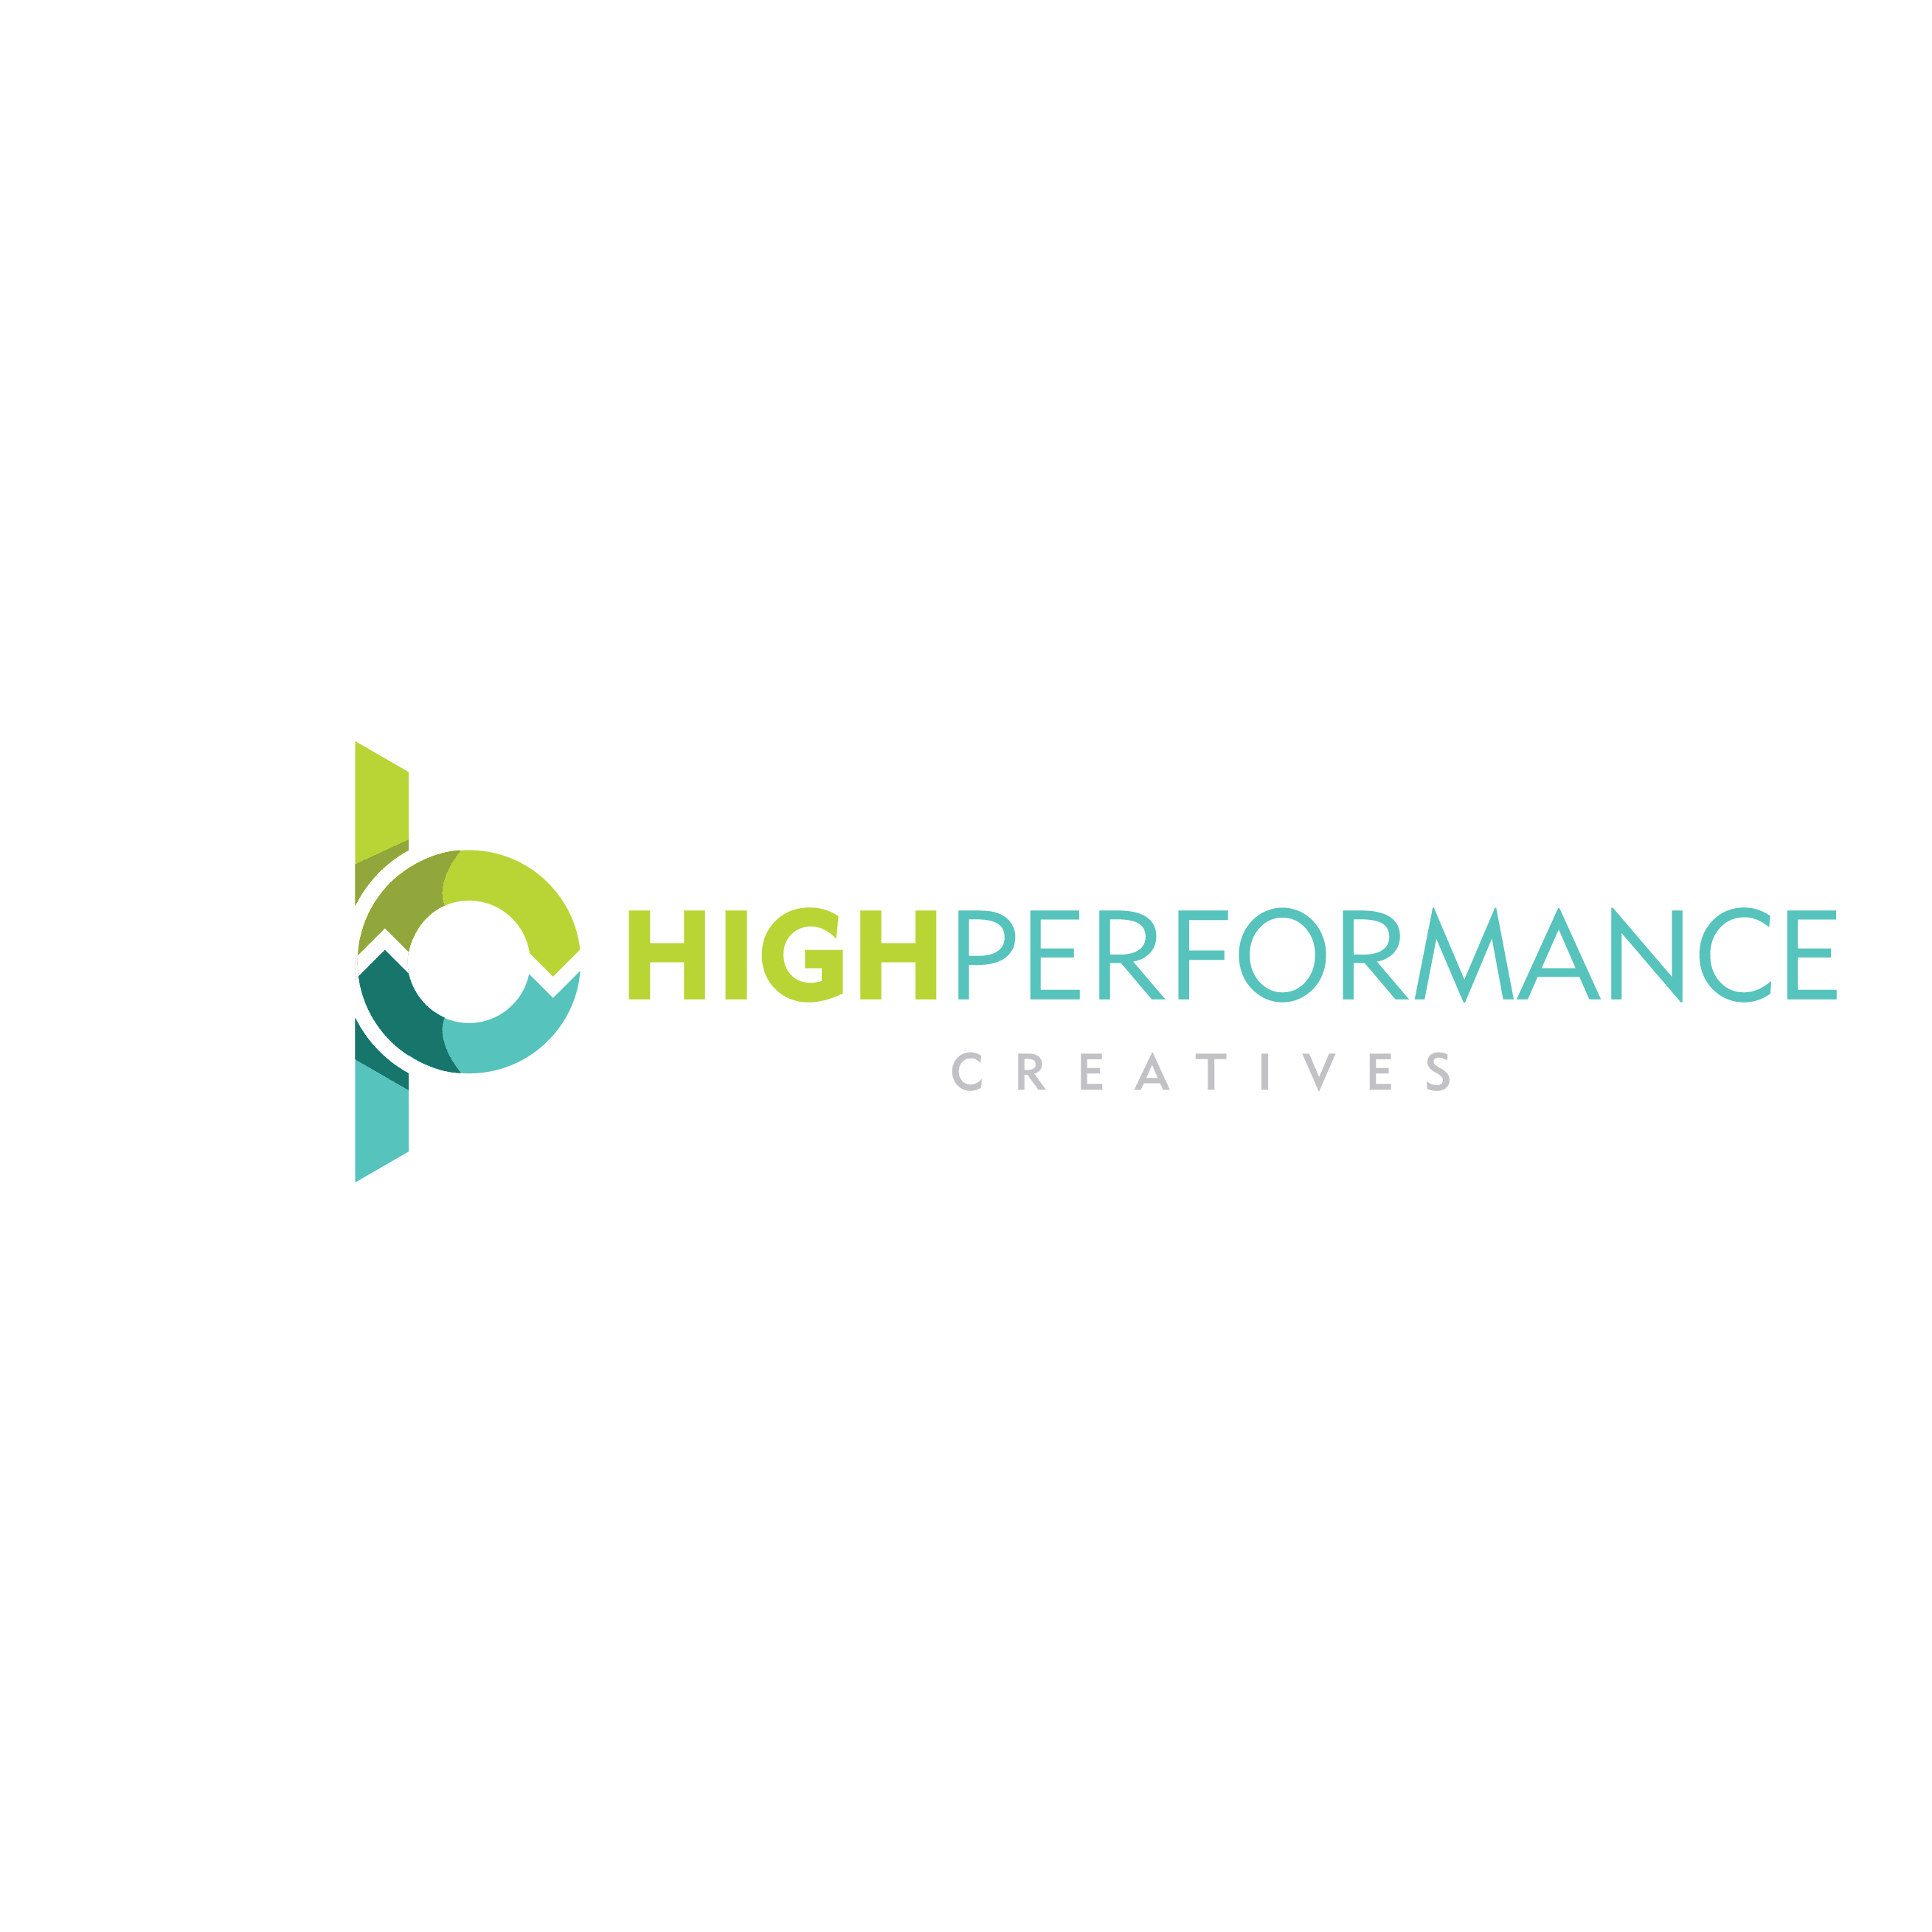 High Performance Websites LLC